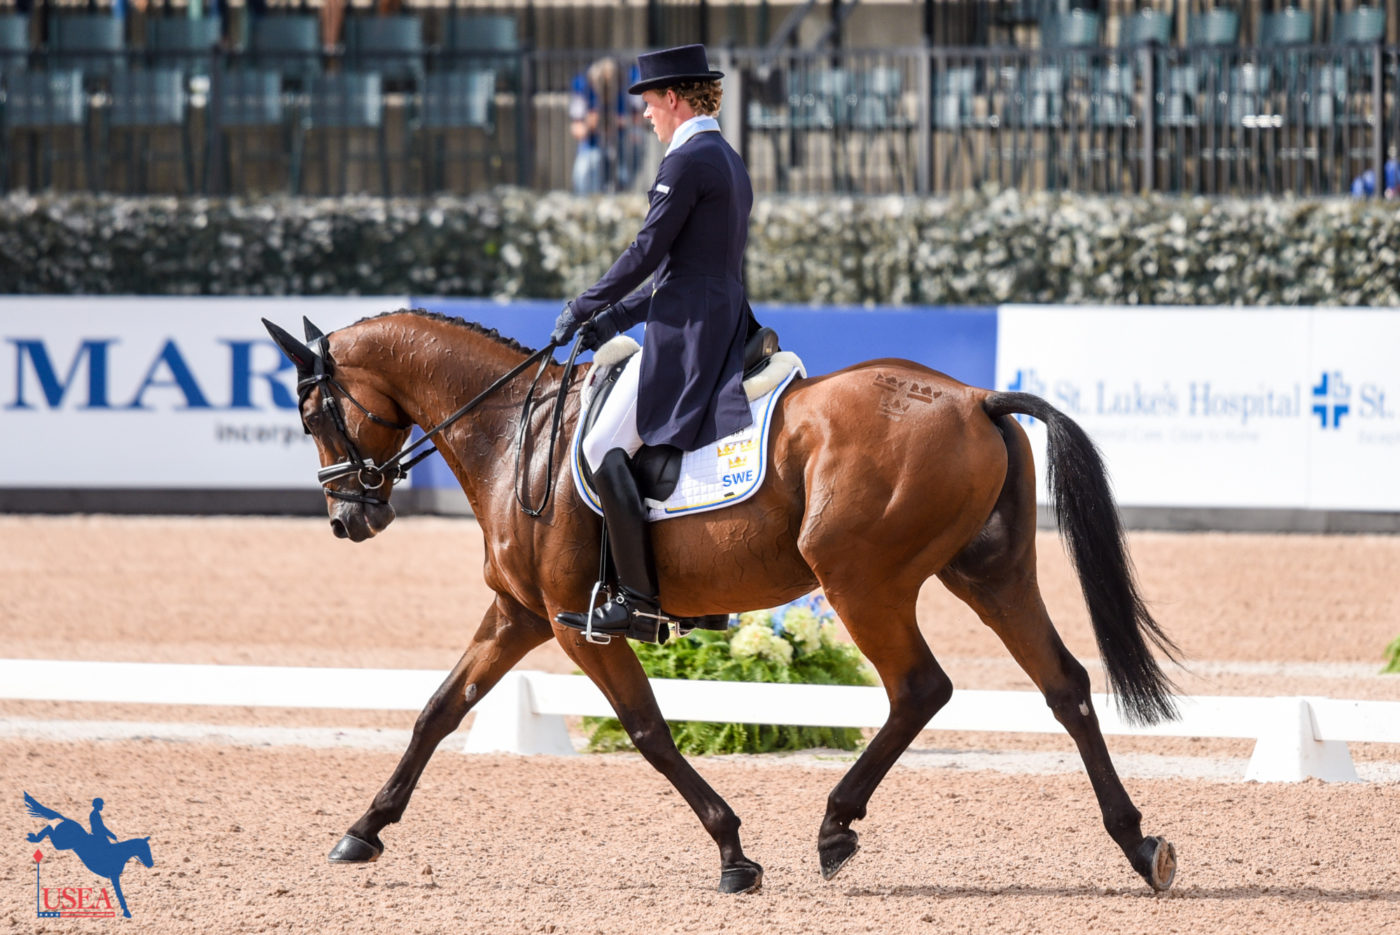 53rd - Ludwig Svennerstal and Stinger (SWE)